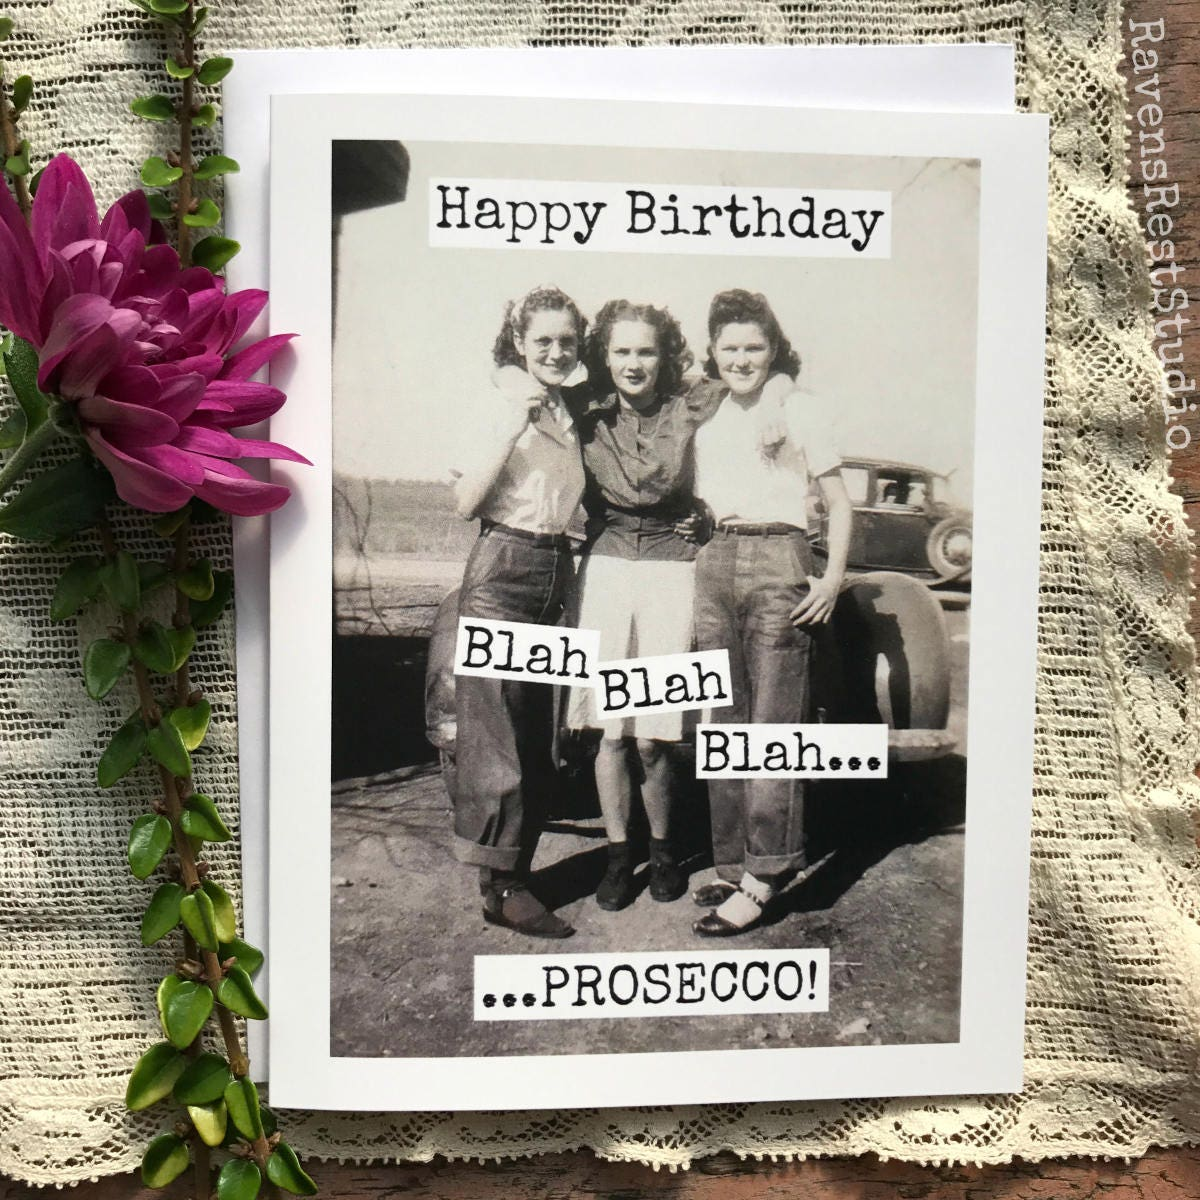 Funny Birthday Card Greeting For Her Drinking Quote Vintage Photo Found Happy Blah Prosecco 502